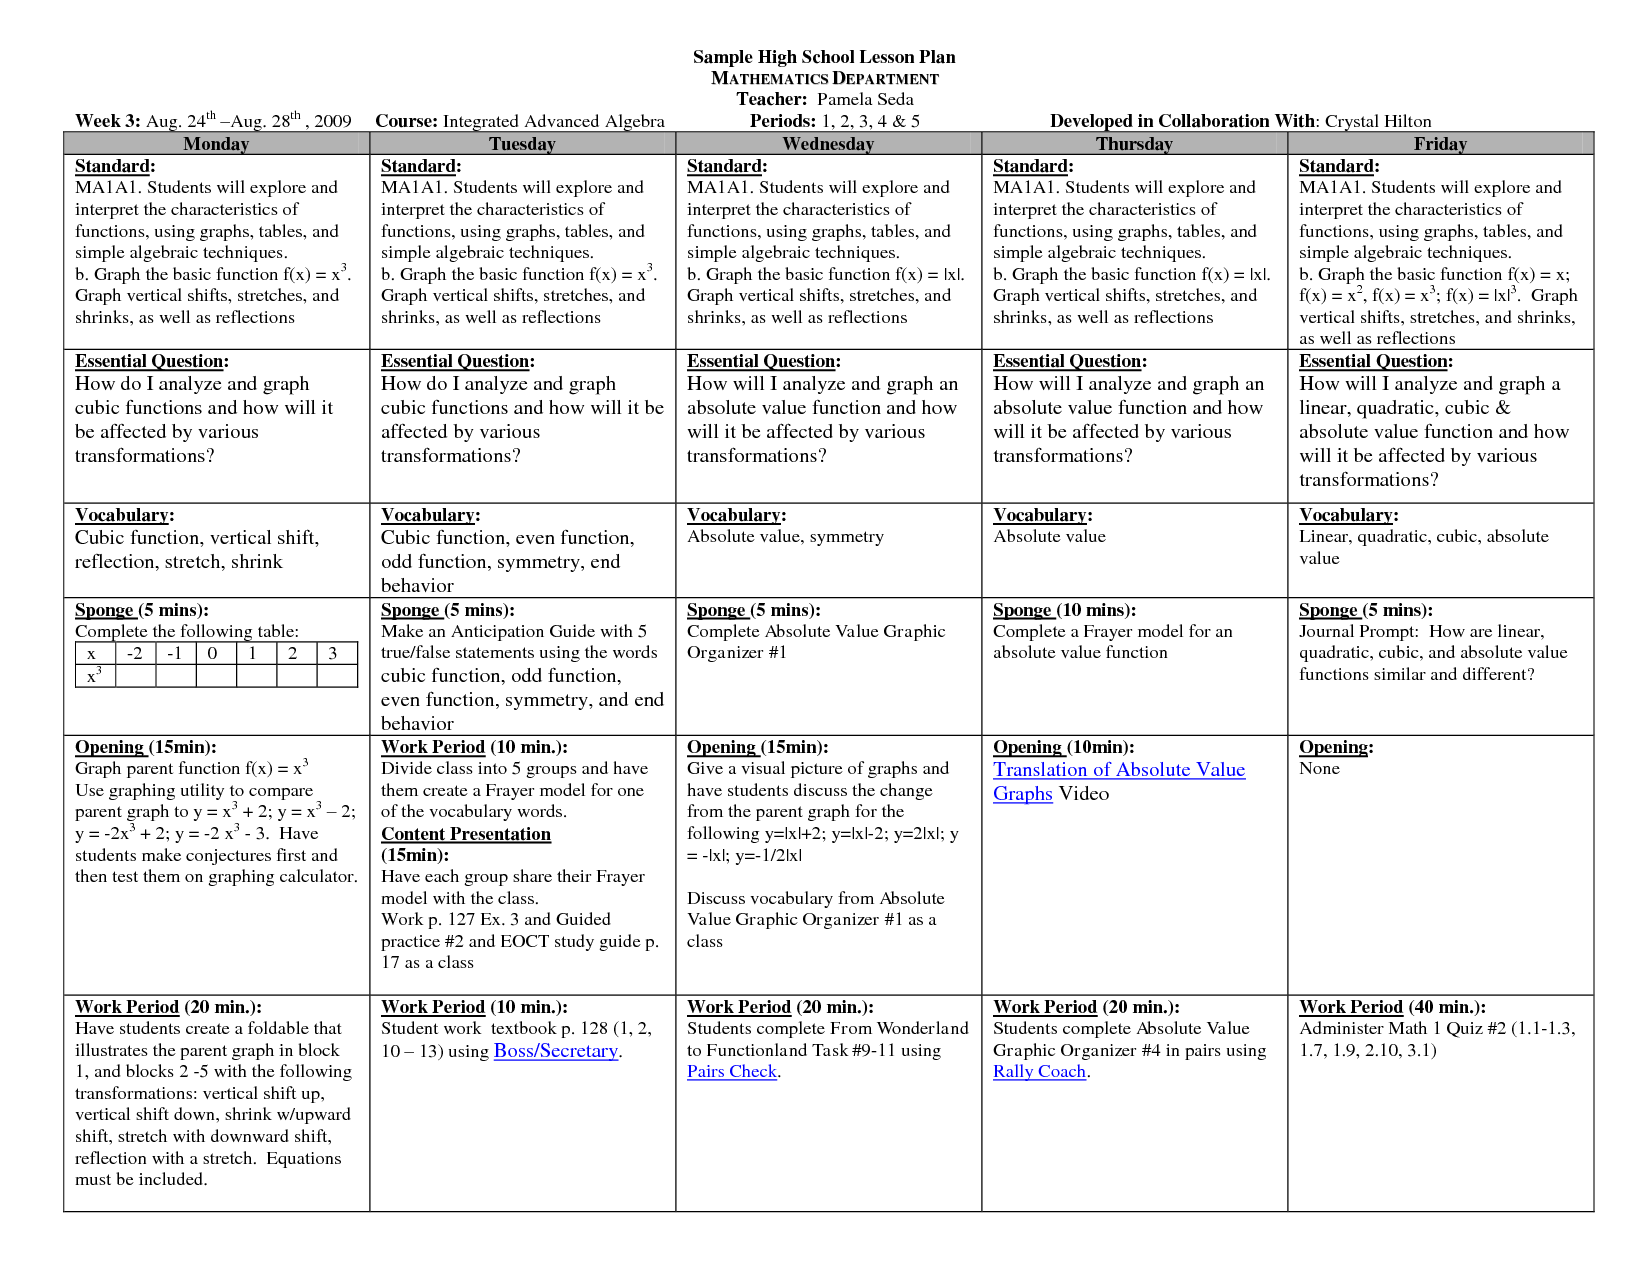 Math Lesson Plan Template High Schoolsample Hs Math Weekly Lesson - Secondary lesson plan template